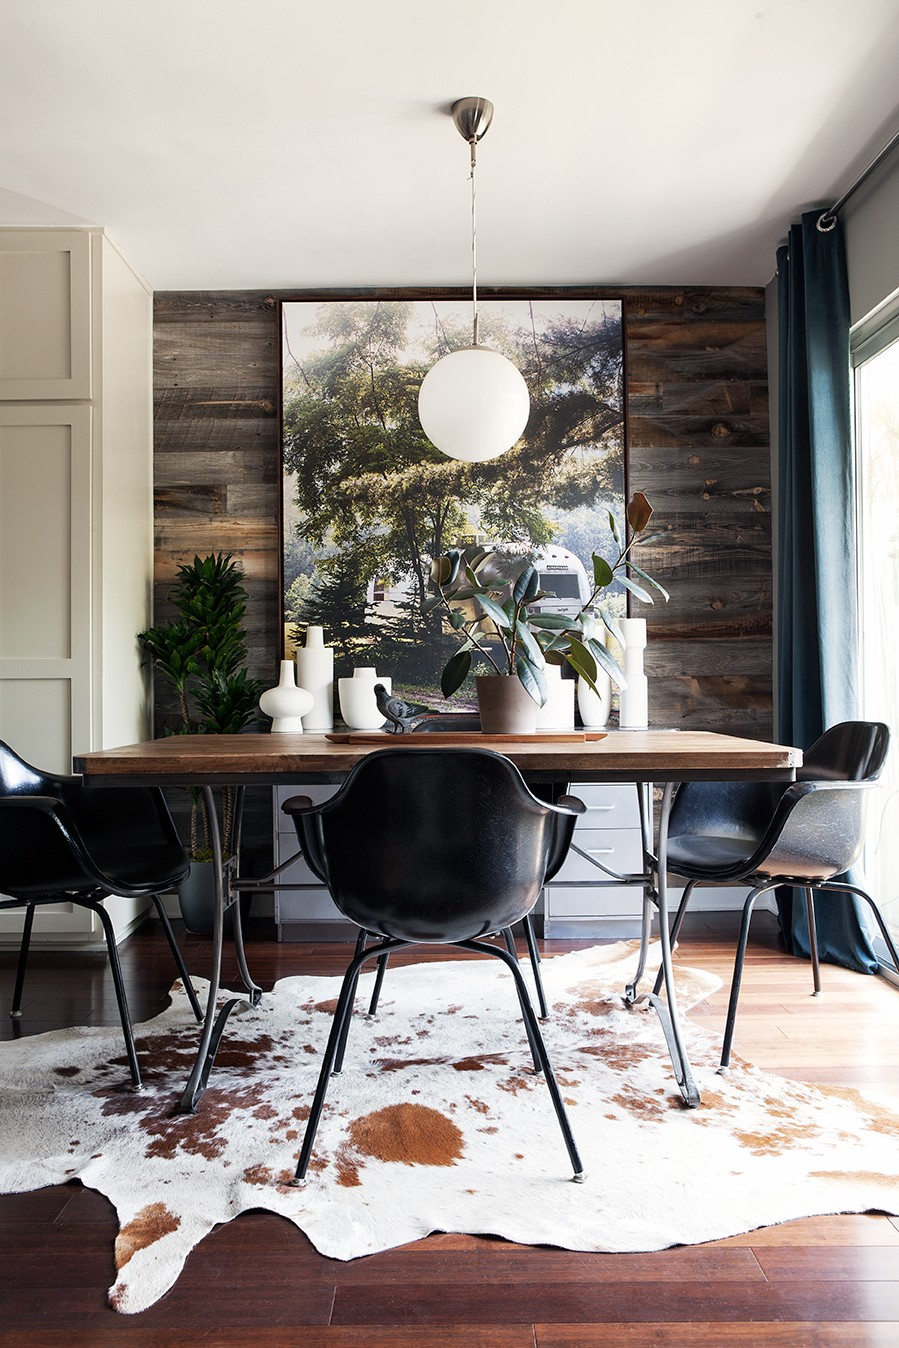 8 Mid-Century Related Things that Are Hot on Pinterest This Week